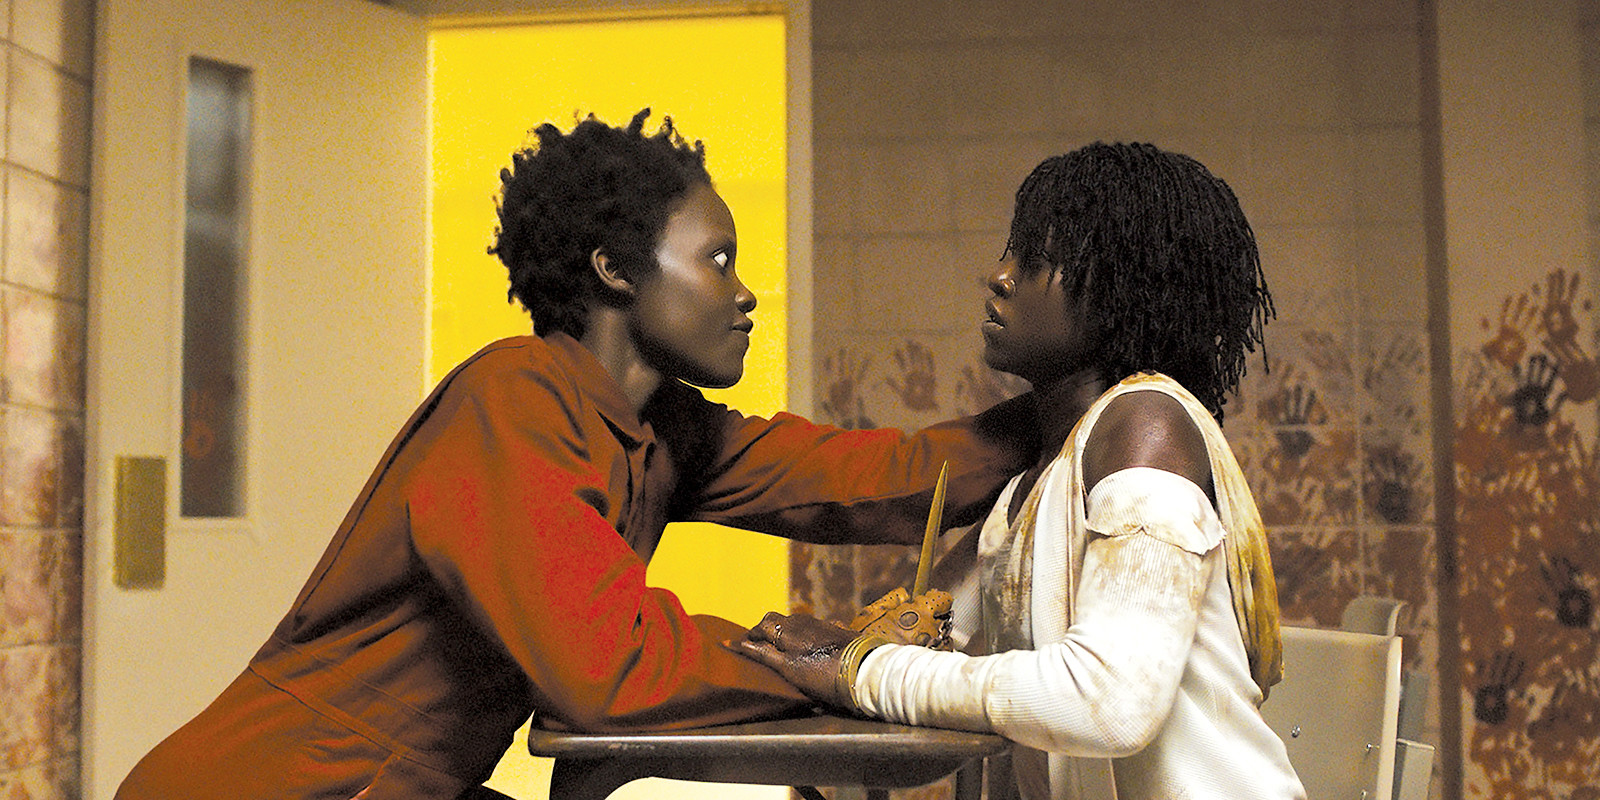 Breaking Down The Political Elements Of Jordan Peele's 'Us'